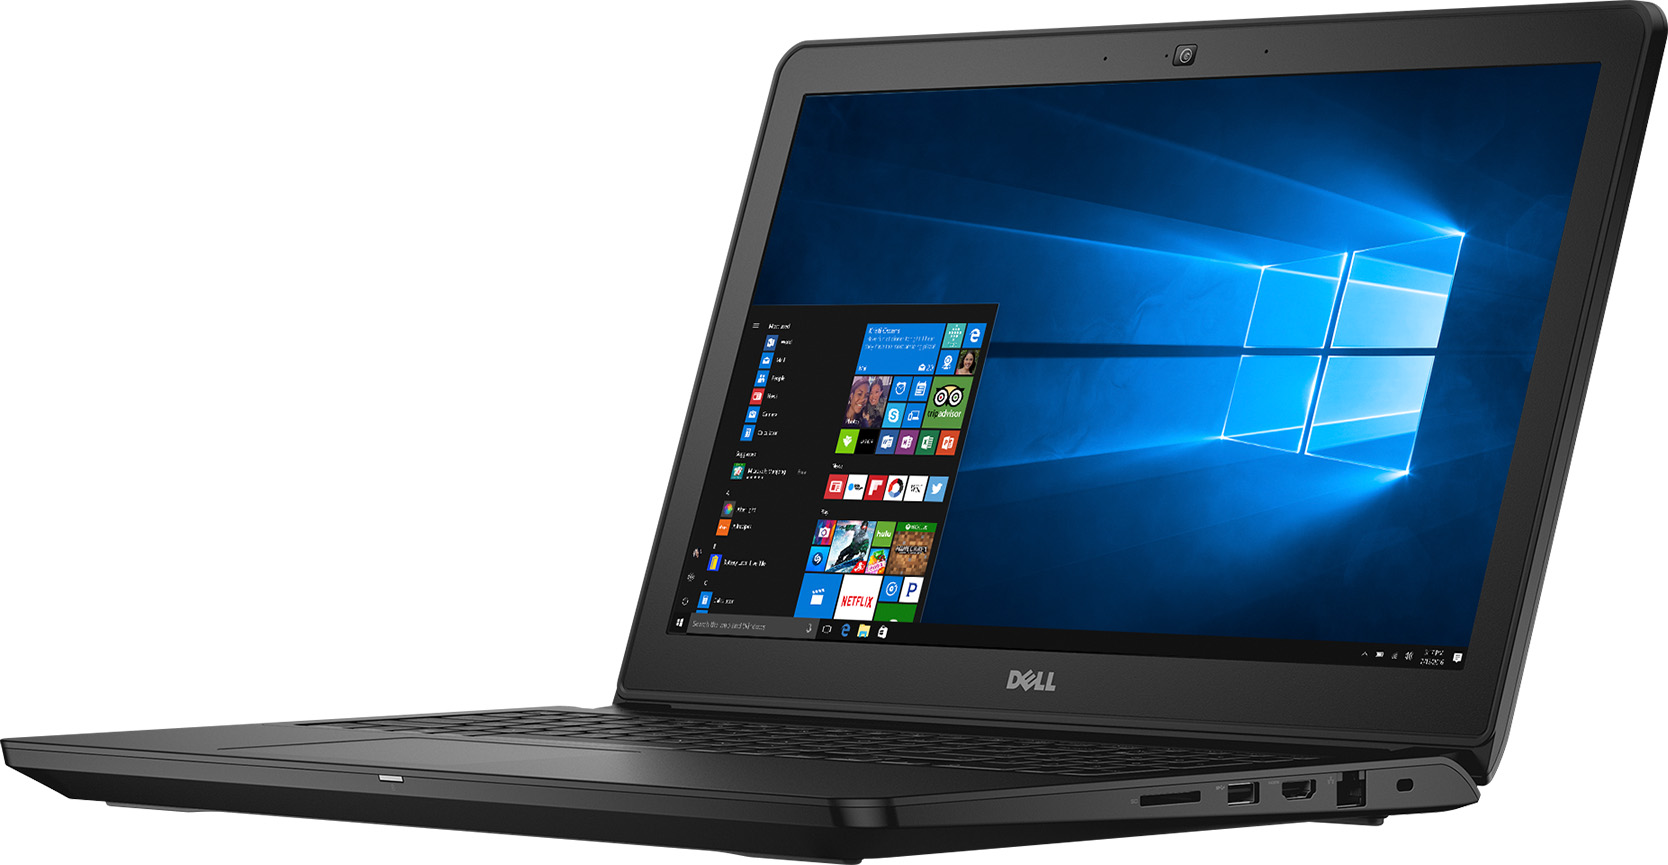 Dell inspiron 15 7000 series price in usa / Samsung ultra hd 55